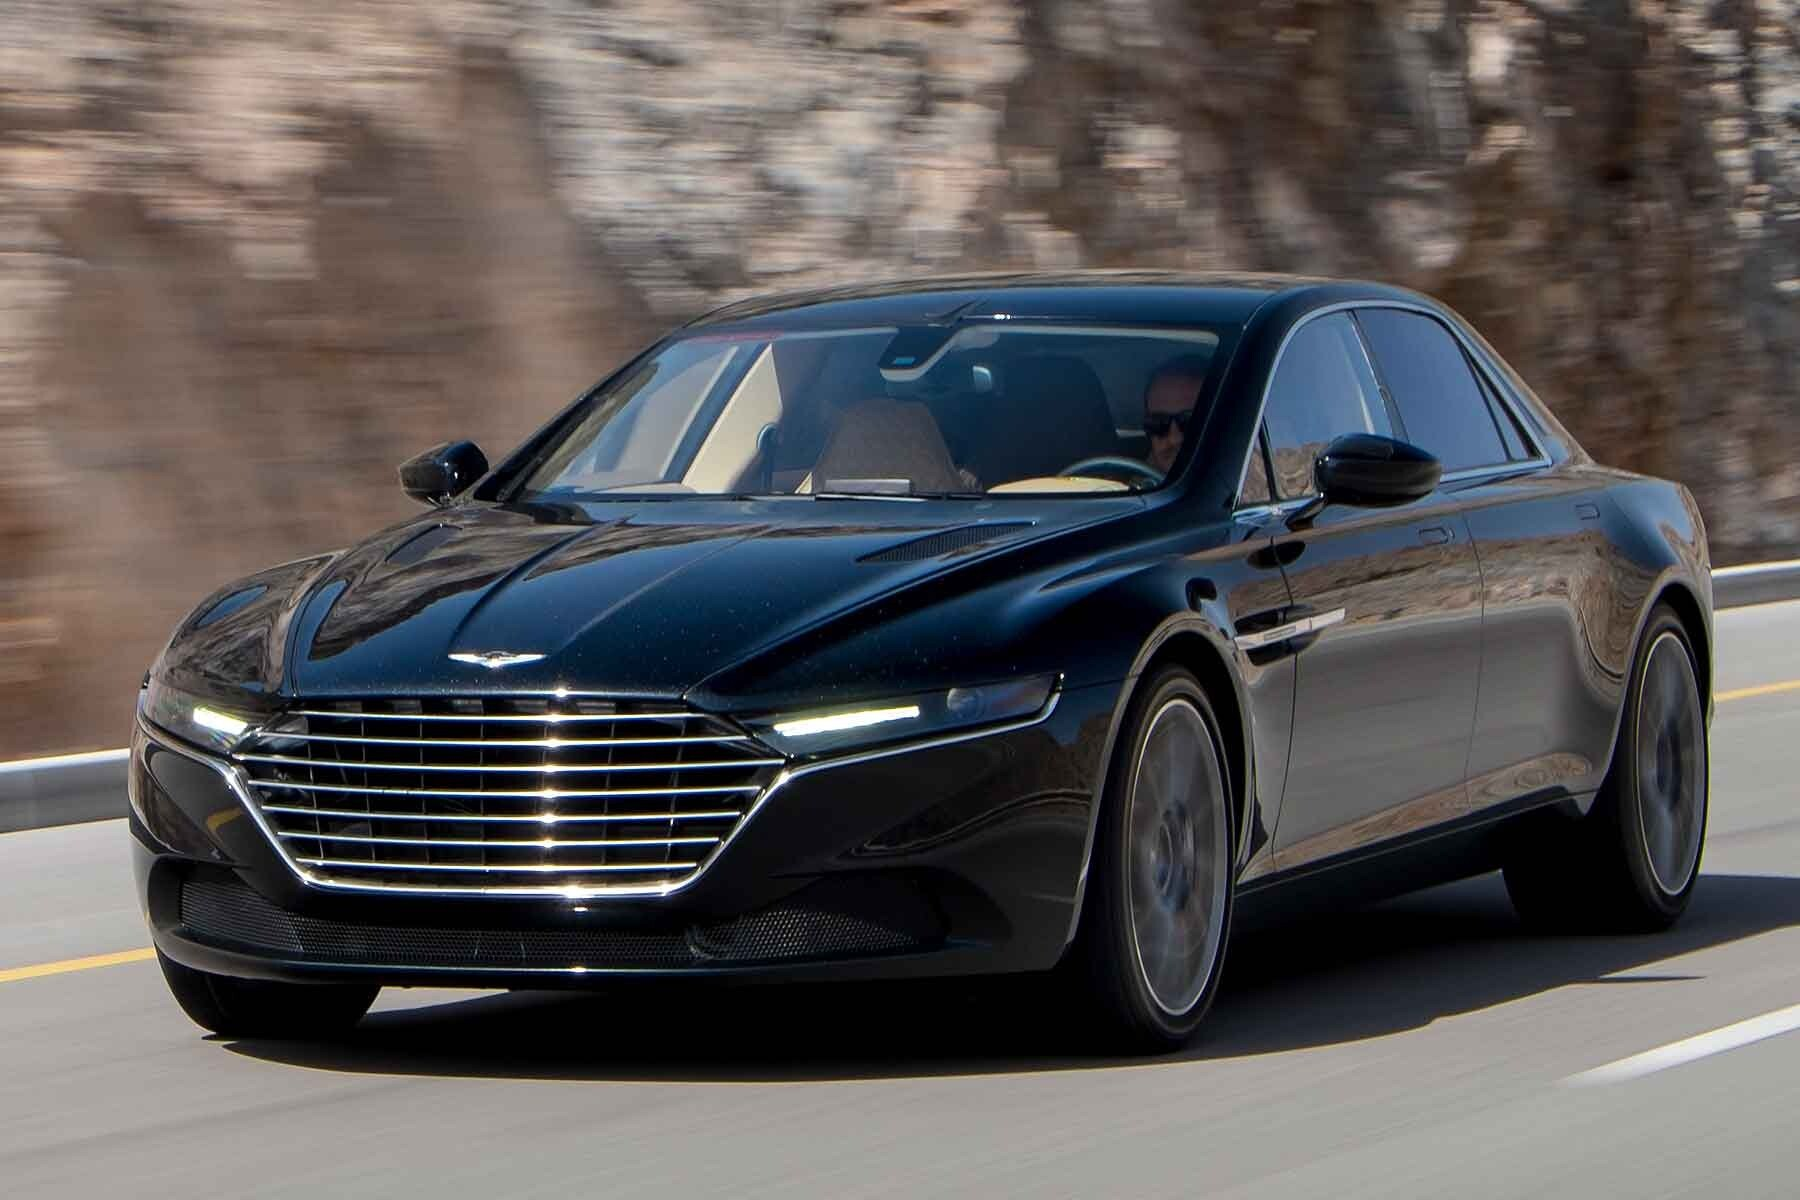 New Latest Aston Martin Lagonda 2015 Black Luxury Car HD